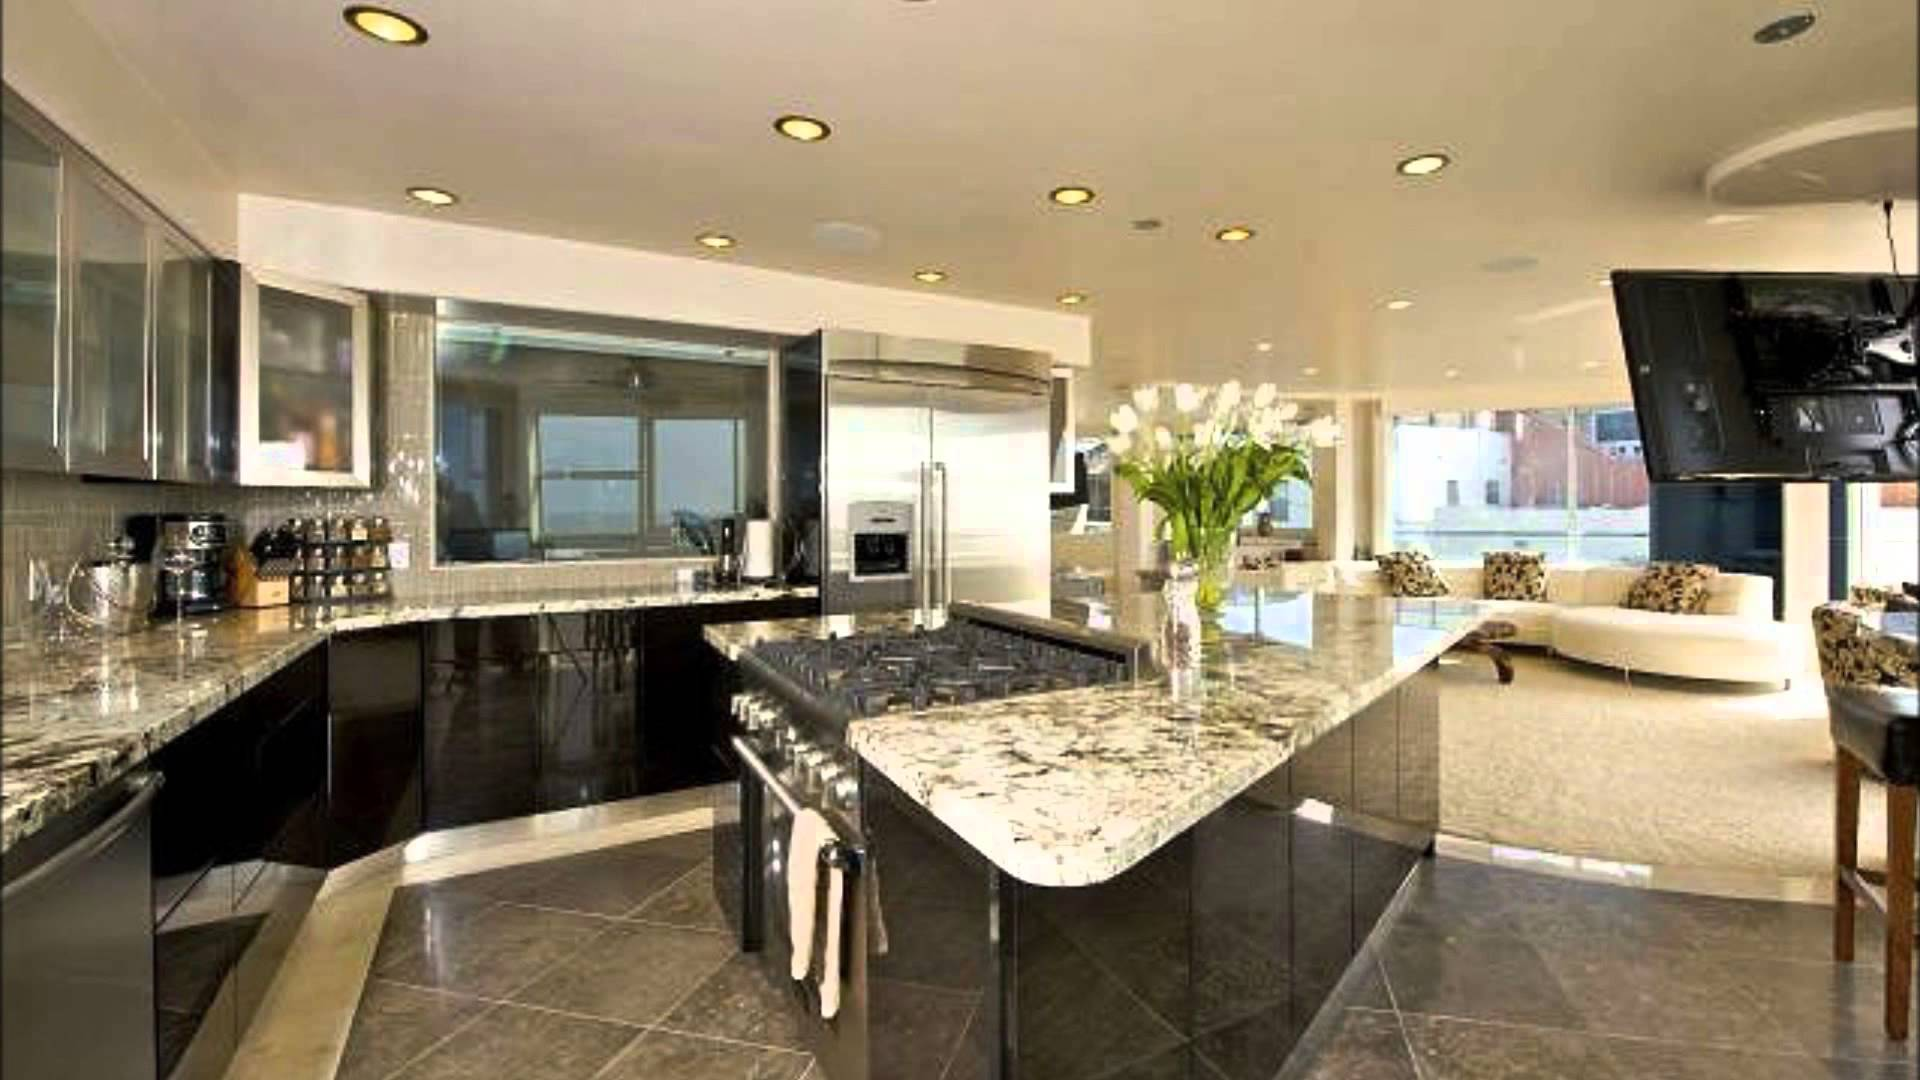 Design your own kitchen ideas with images for Design my kitchen